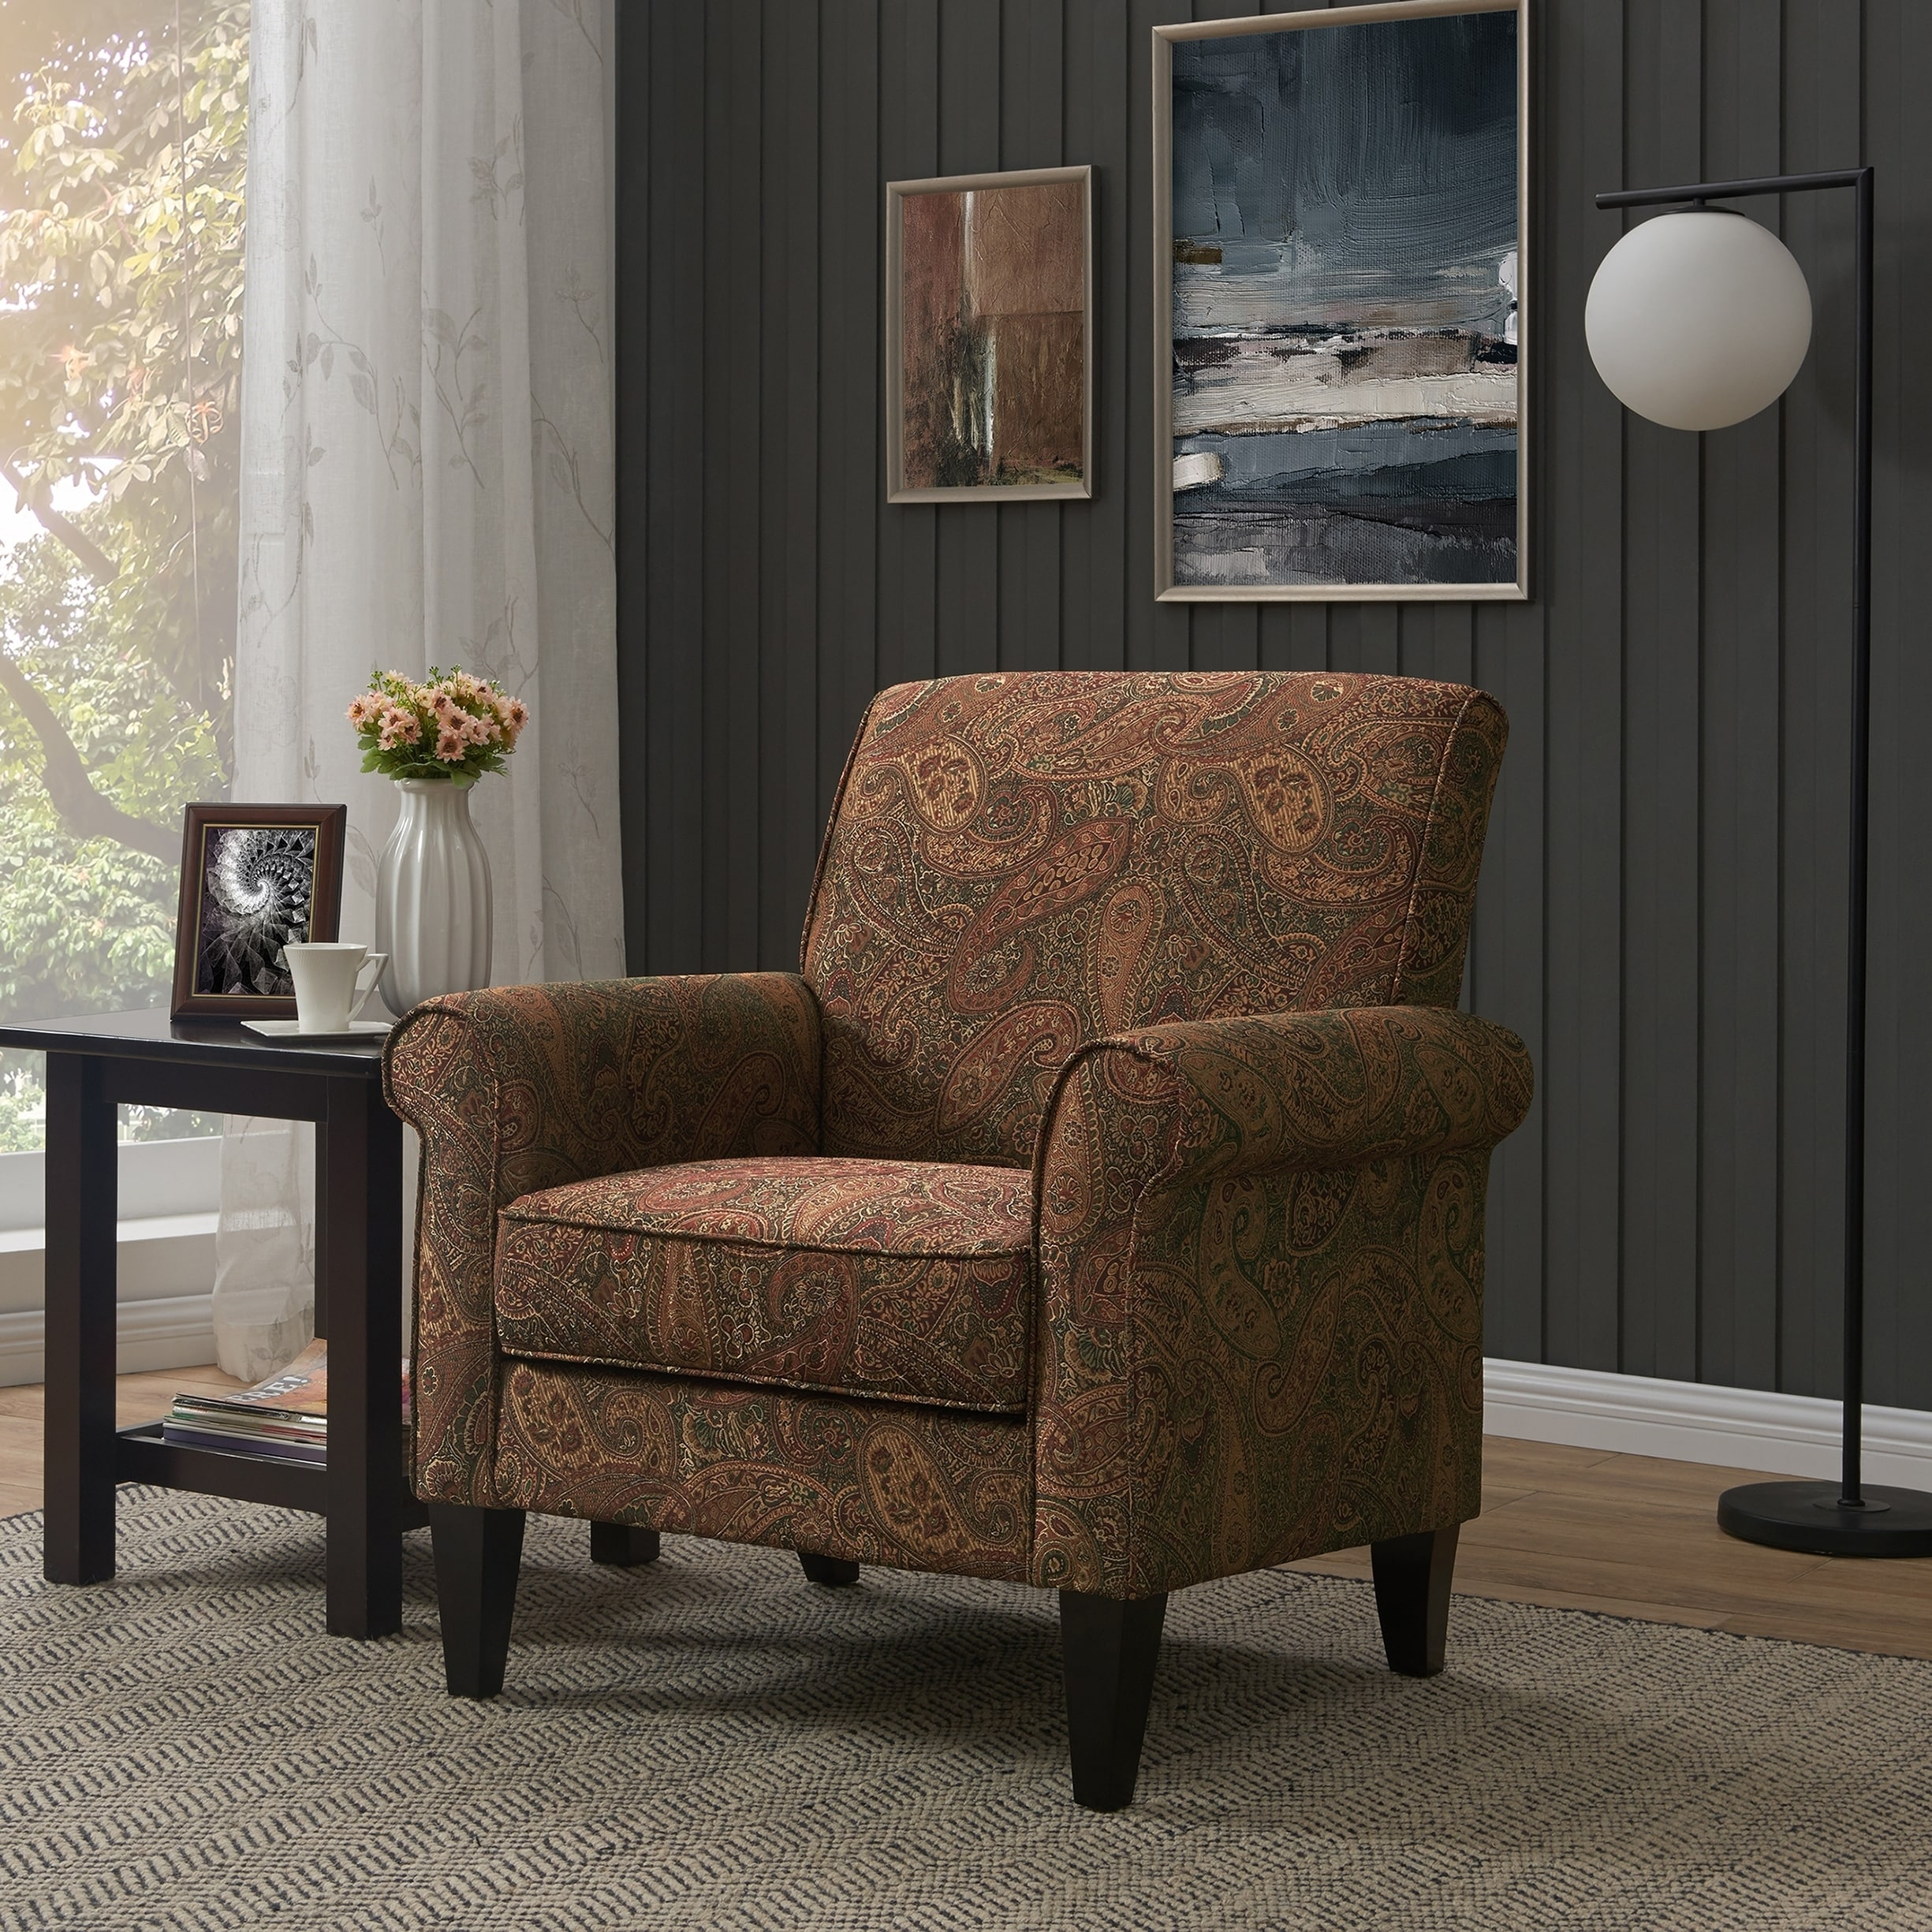 Paisley Chair Copper Grove Herve Paisley Arm Chair